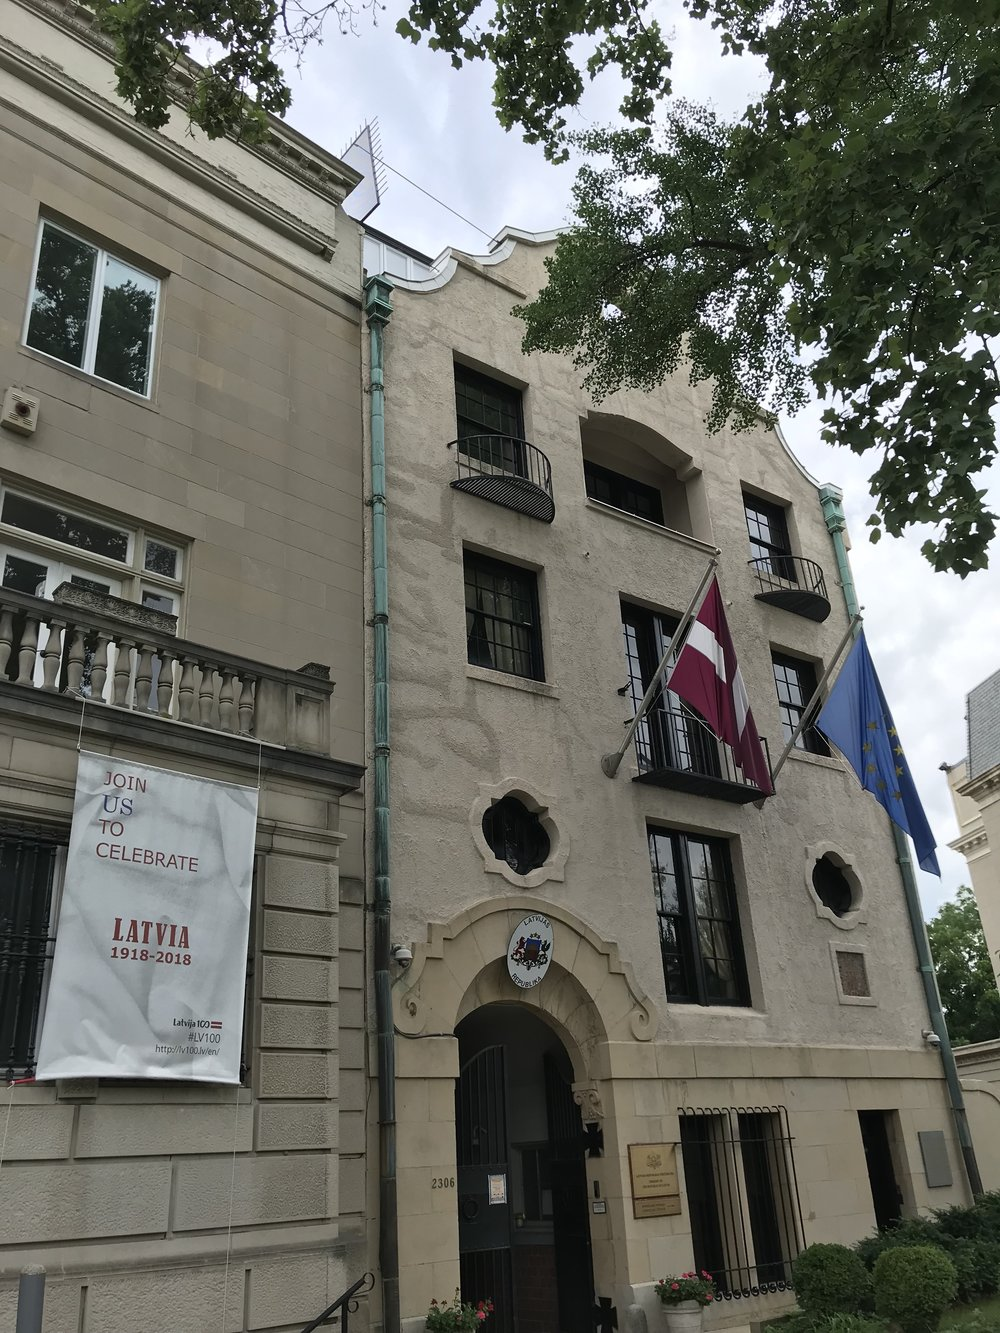 The Embassy of Latvia.